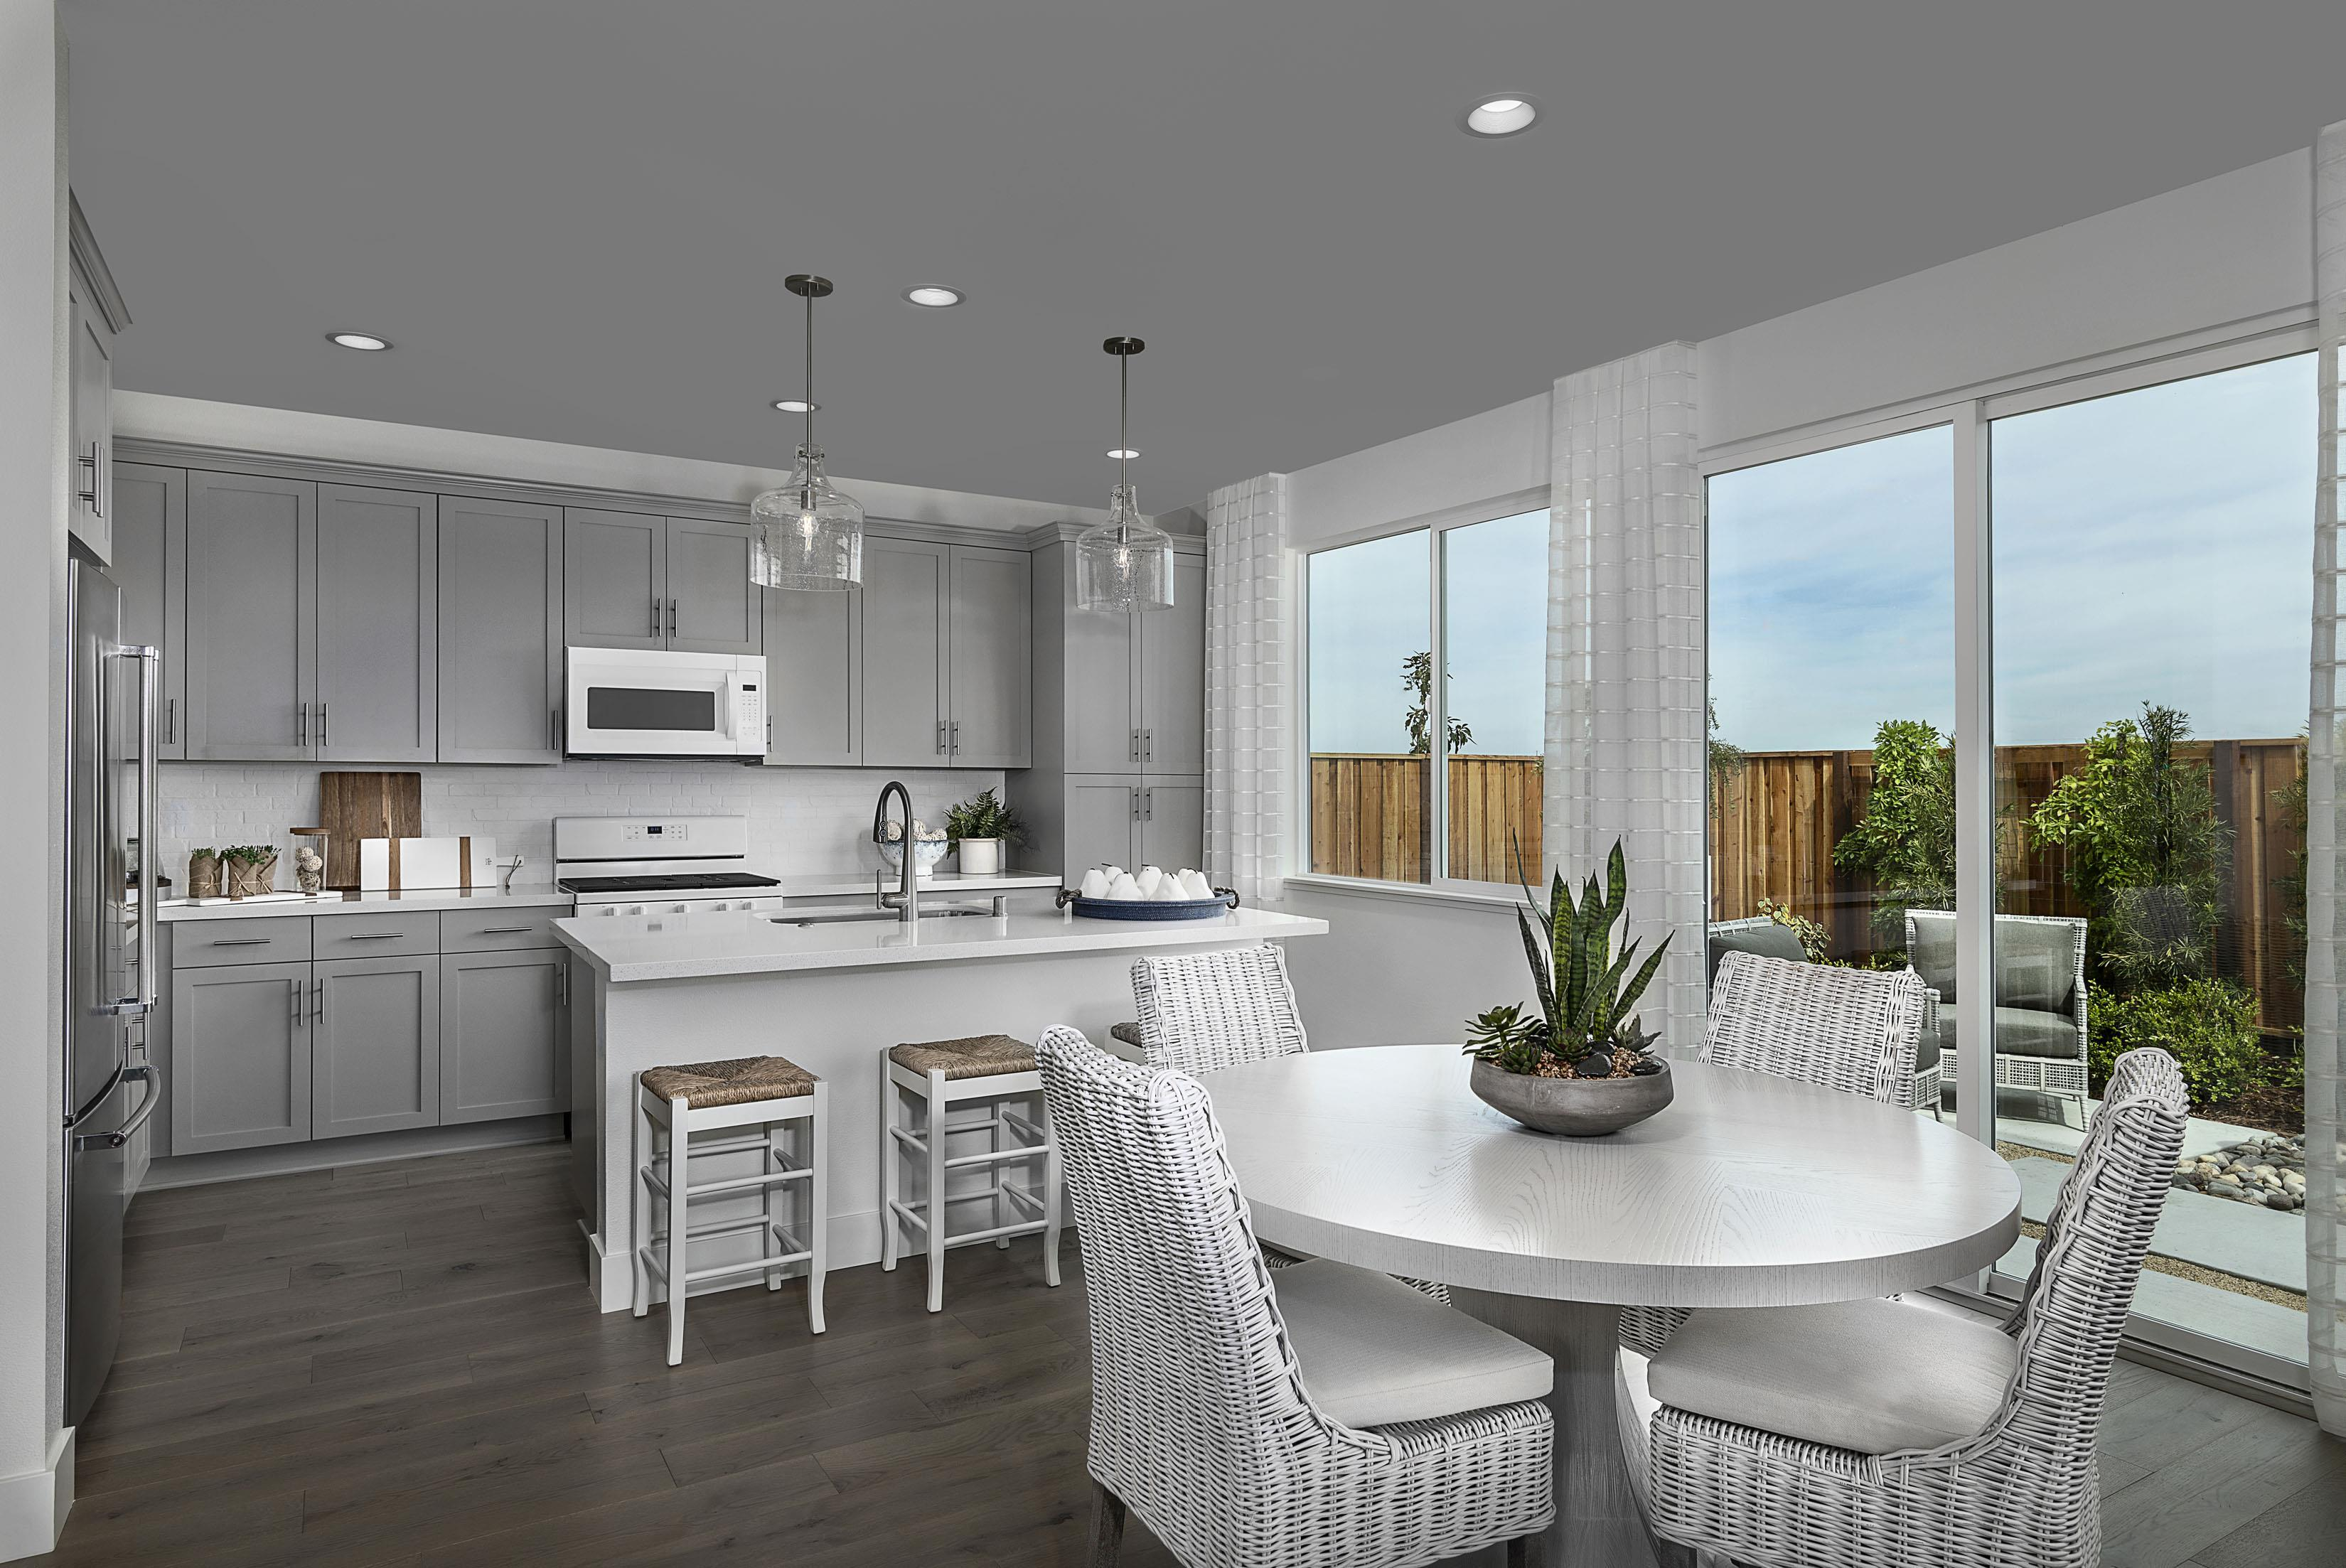 Kitchen featured in the Carousel Residence 1 By Kiper Homes in Santa Cruz, CA